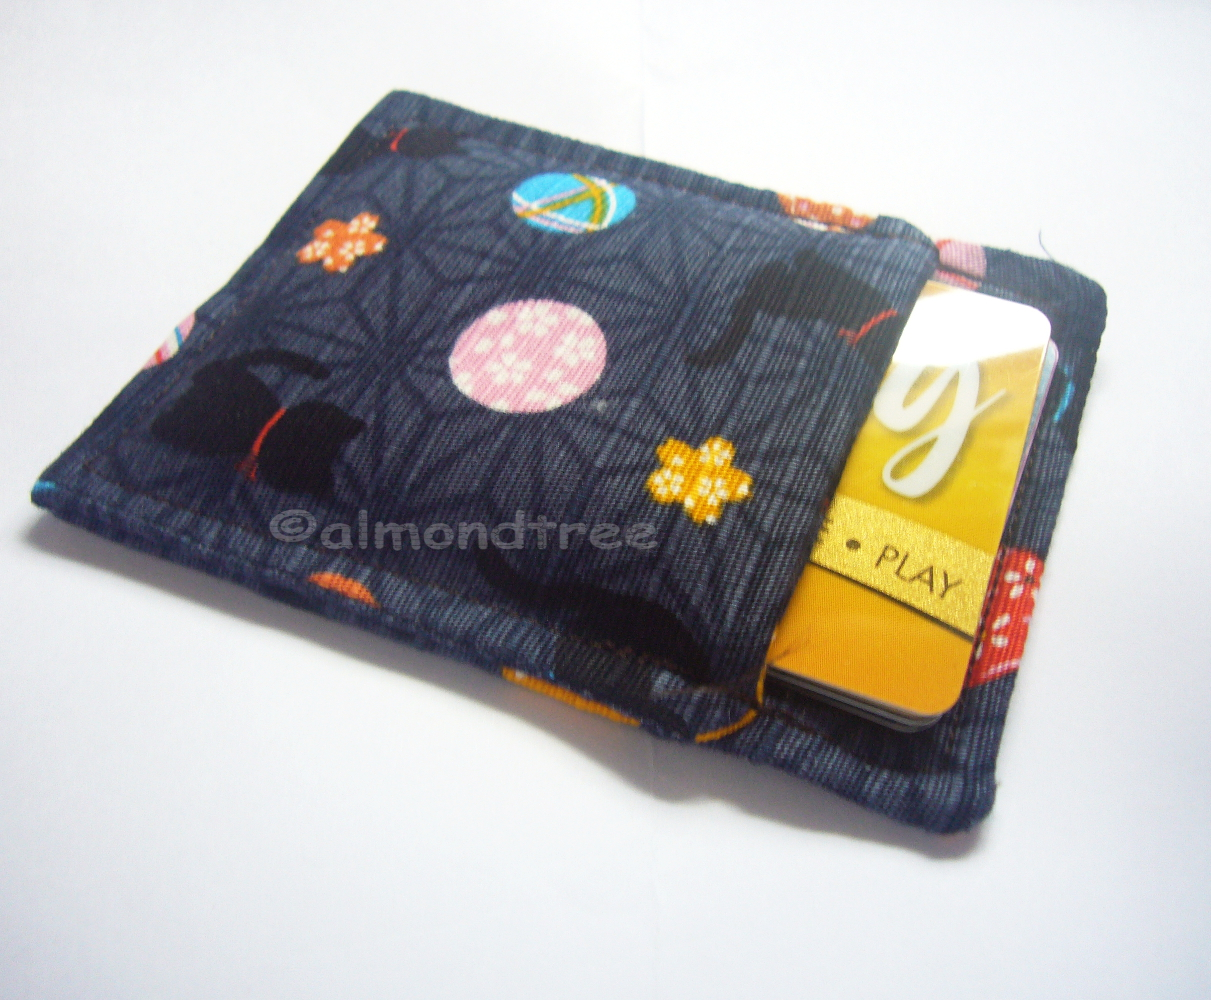 Japan Cat Grab And Go Slim Card Women Wallet Business Card Holder